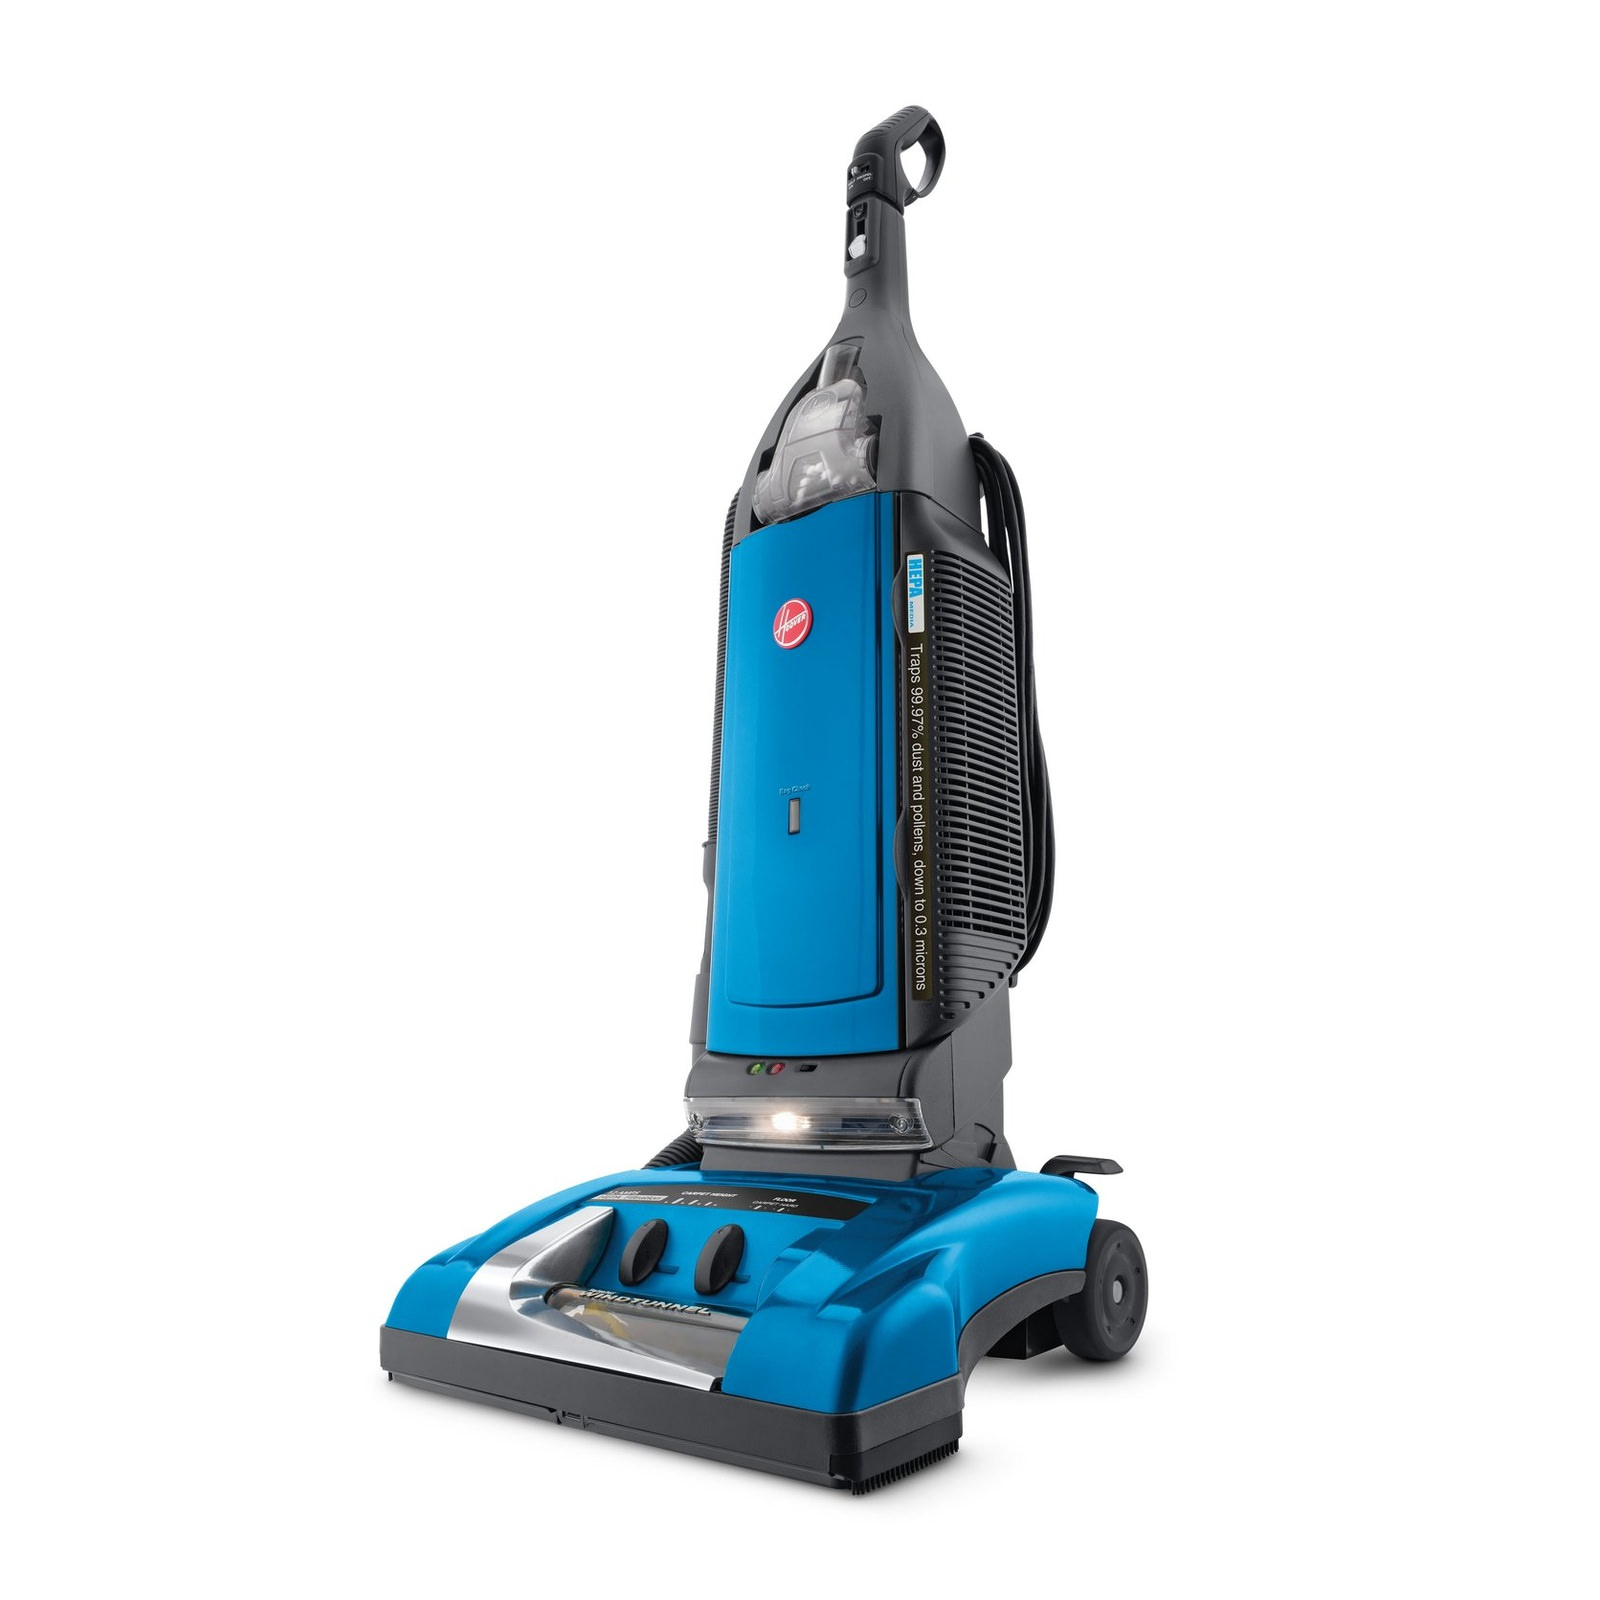 Hoover Windtunnel Self Propelled Bagged Upright Vacuum U6485900